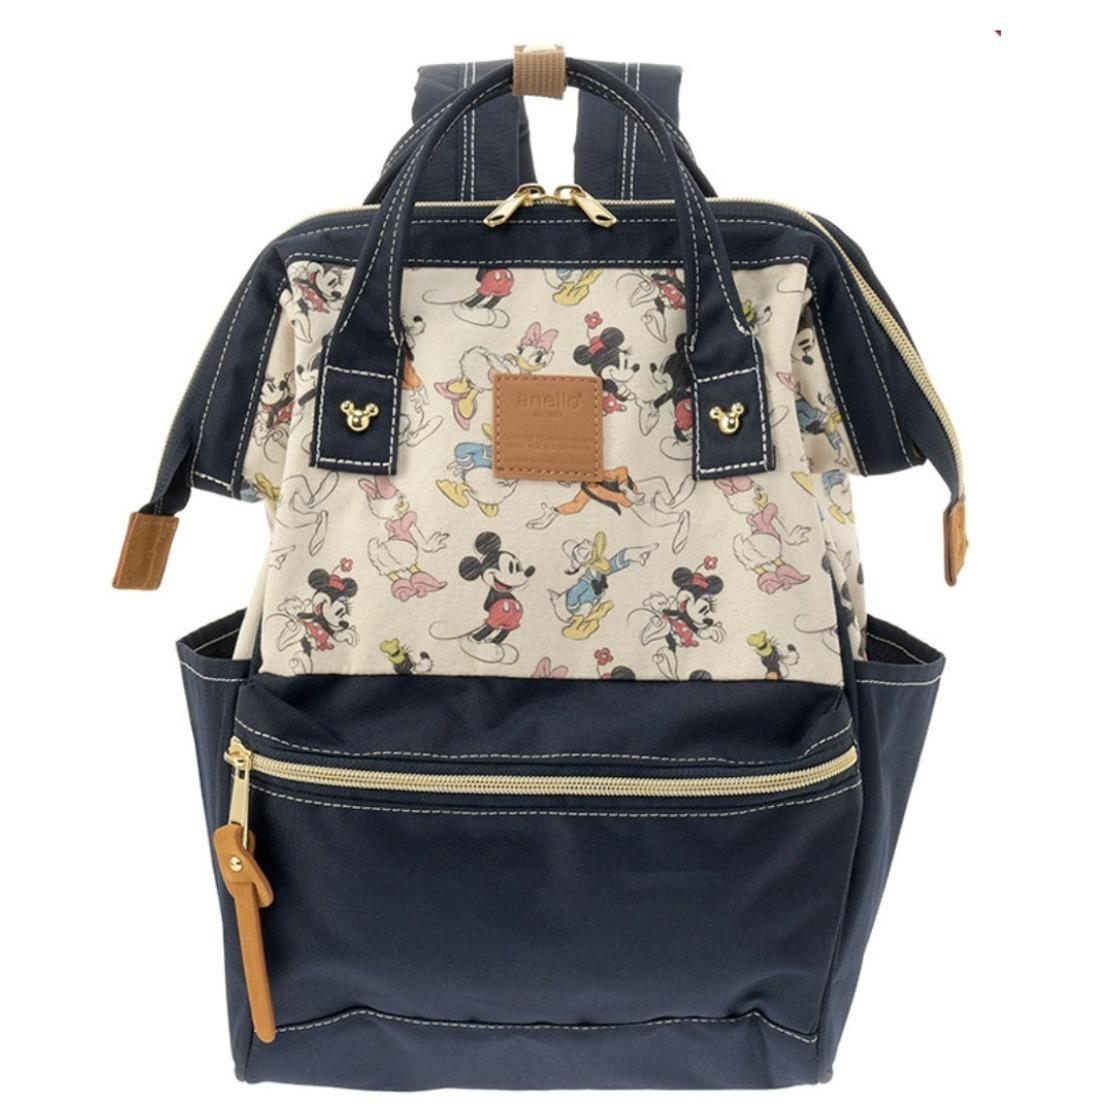 Gss Limited Time Disney X Anello Exclusive Collections Backpack Medium Size